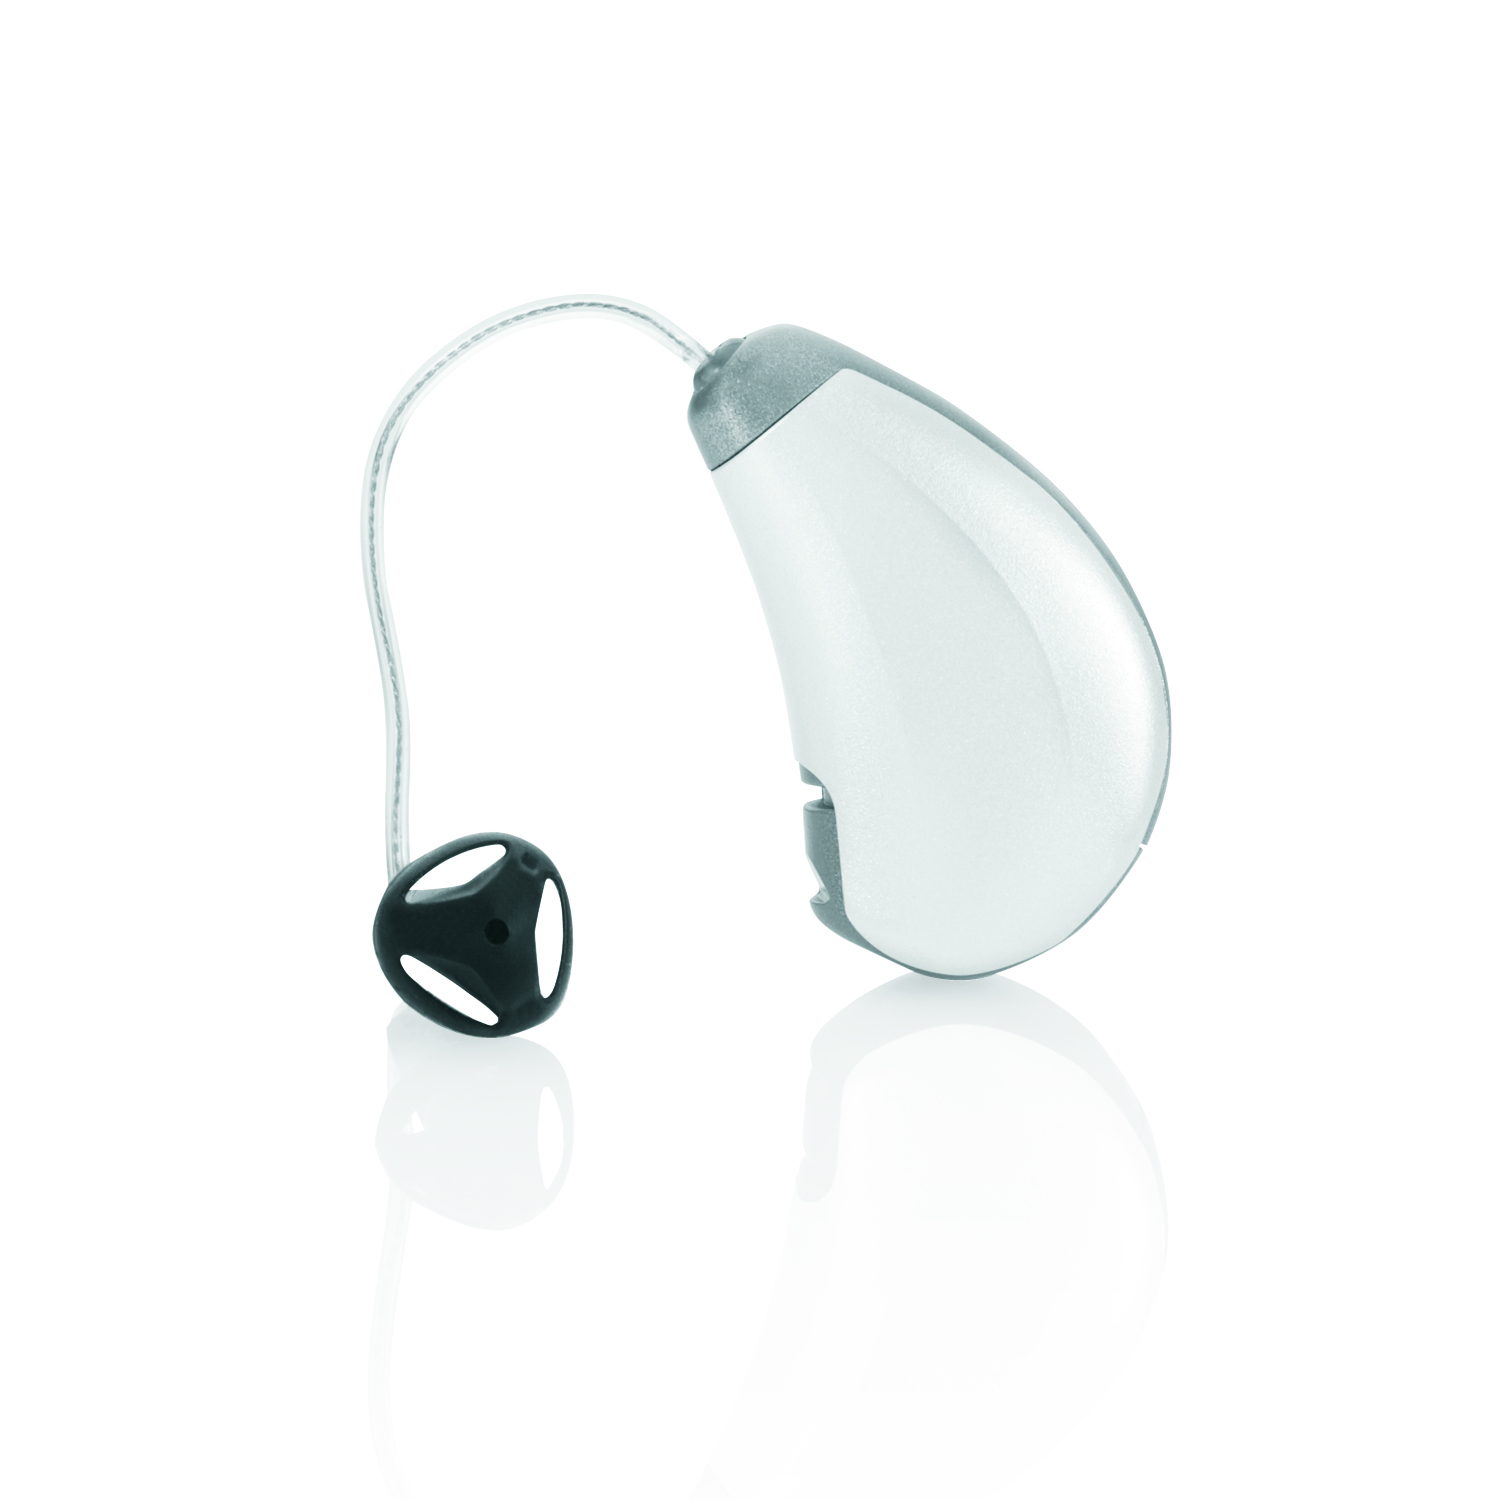 Made for iPhone Hearing Aid Manual